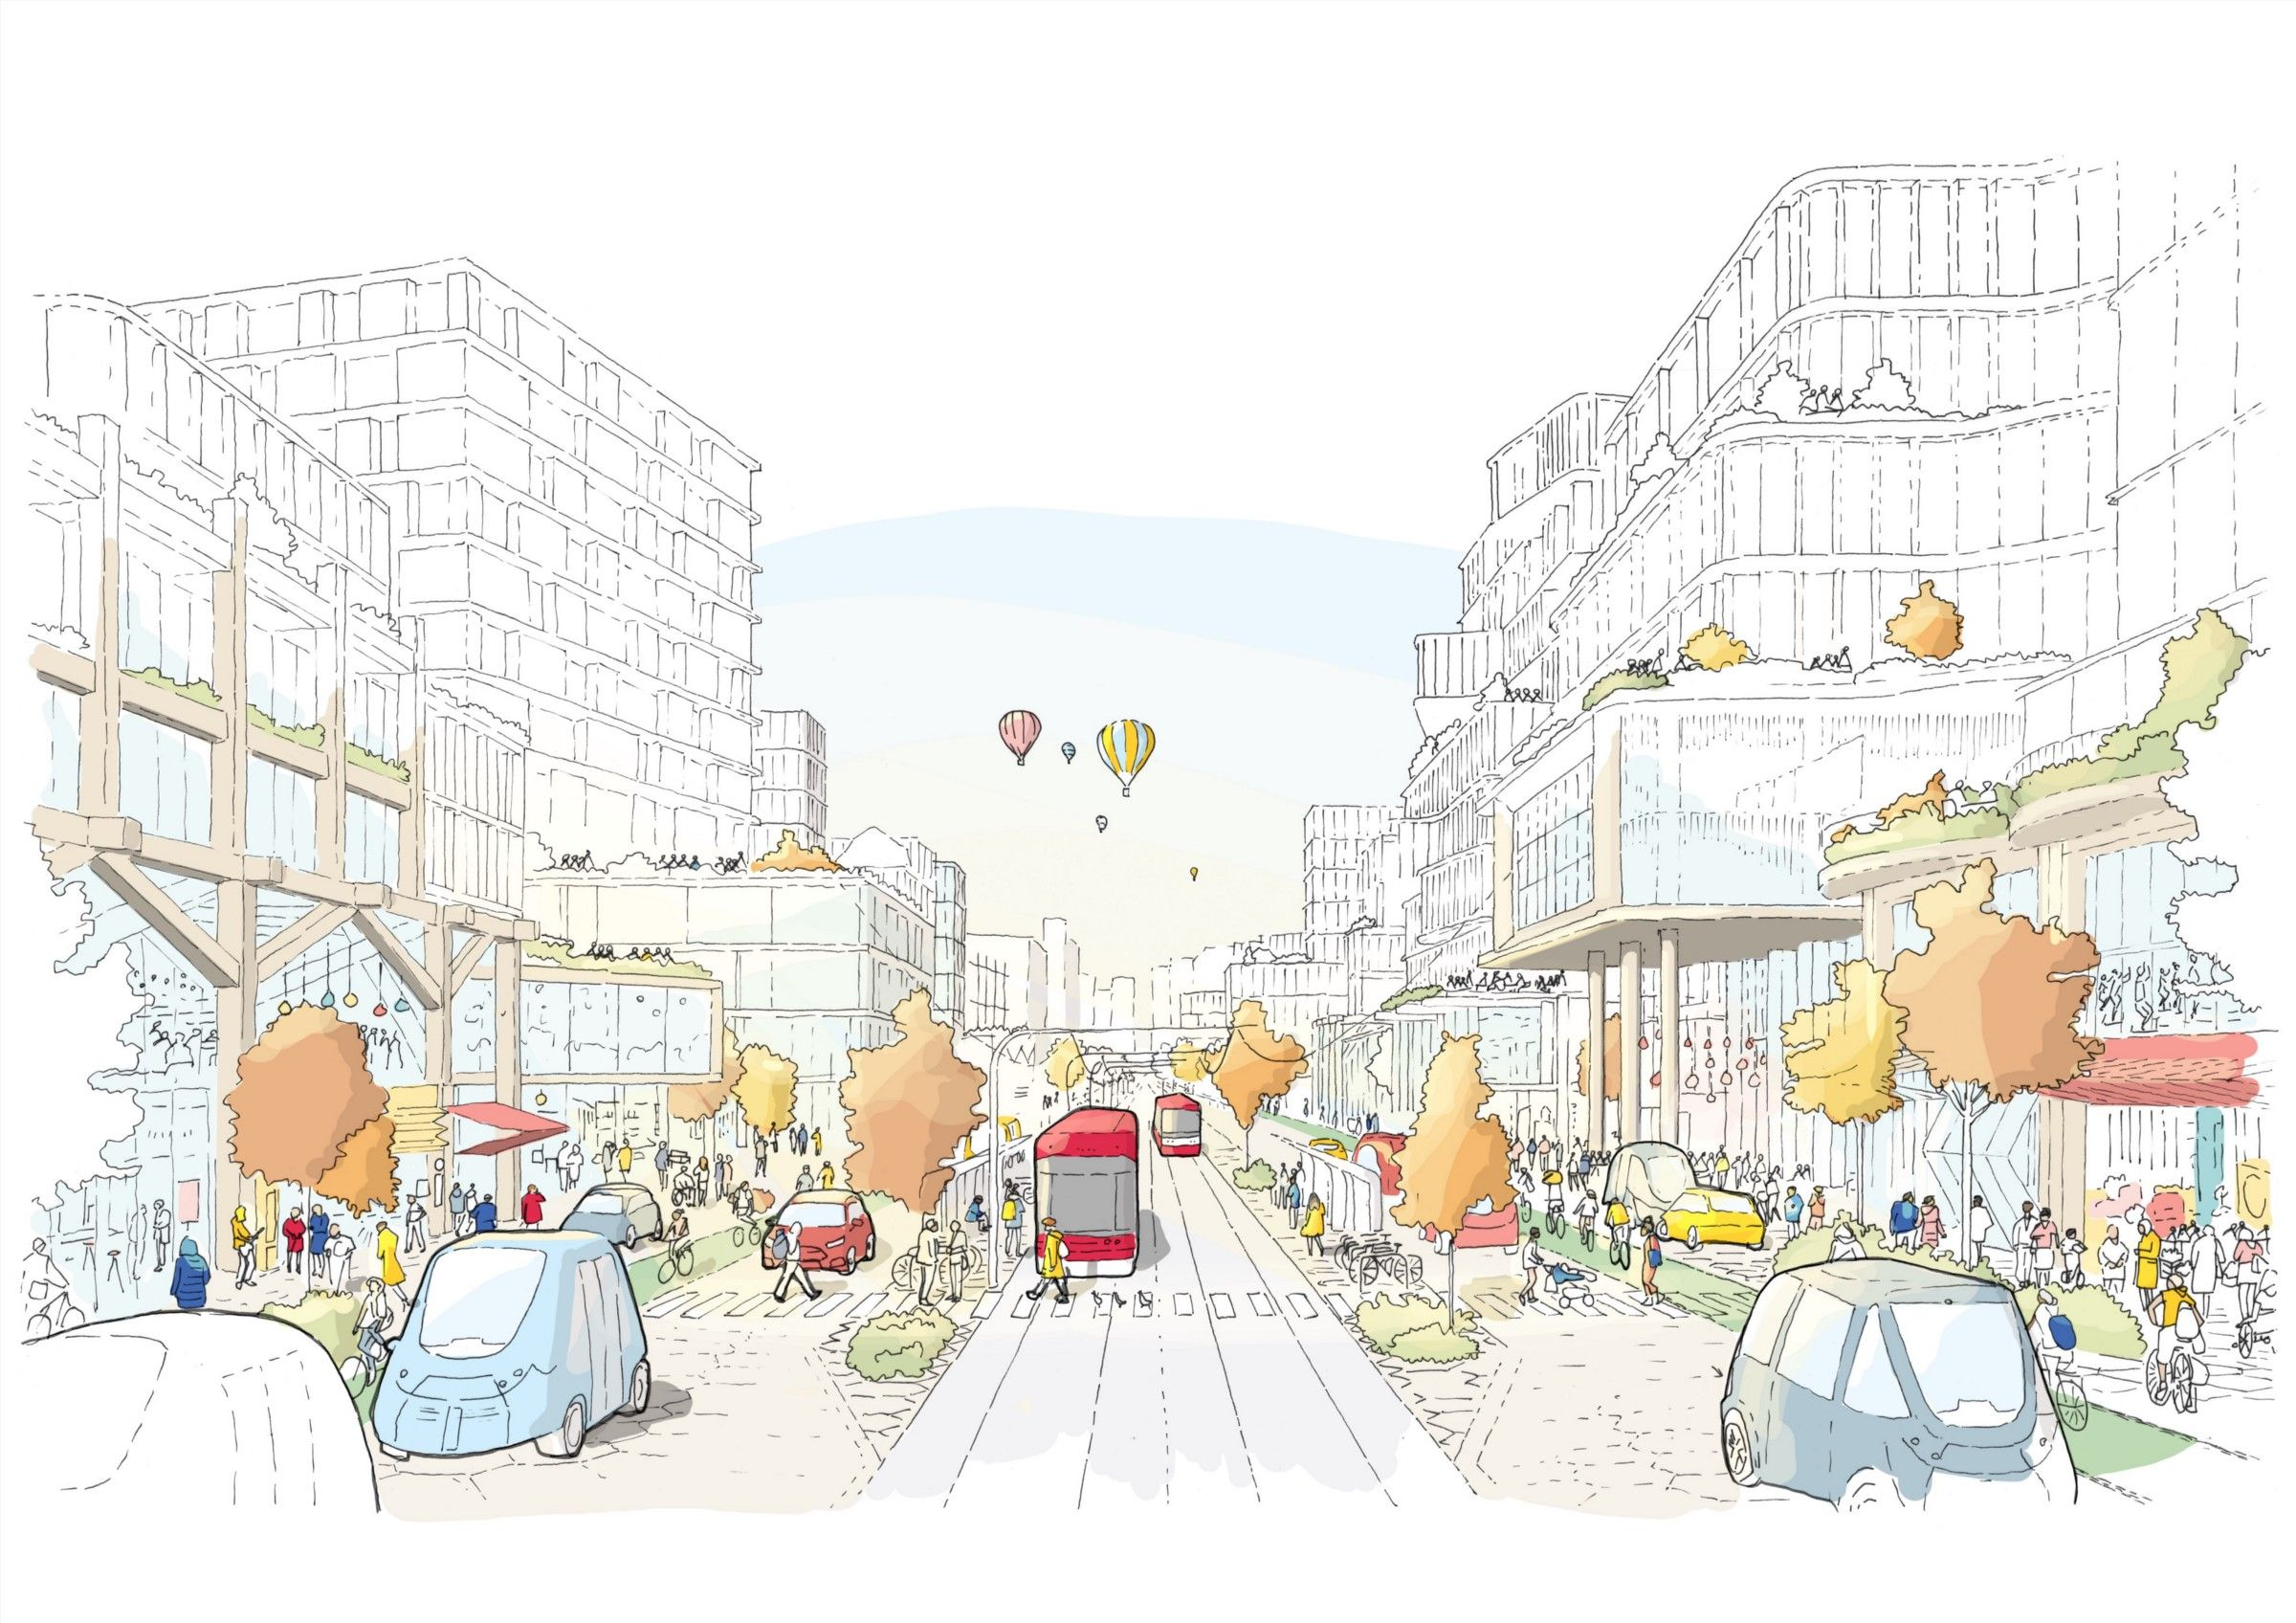 An illustration of a lively, futuristic street with streetcars, bikes, shops, pedestrians.